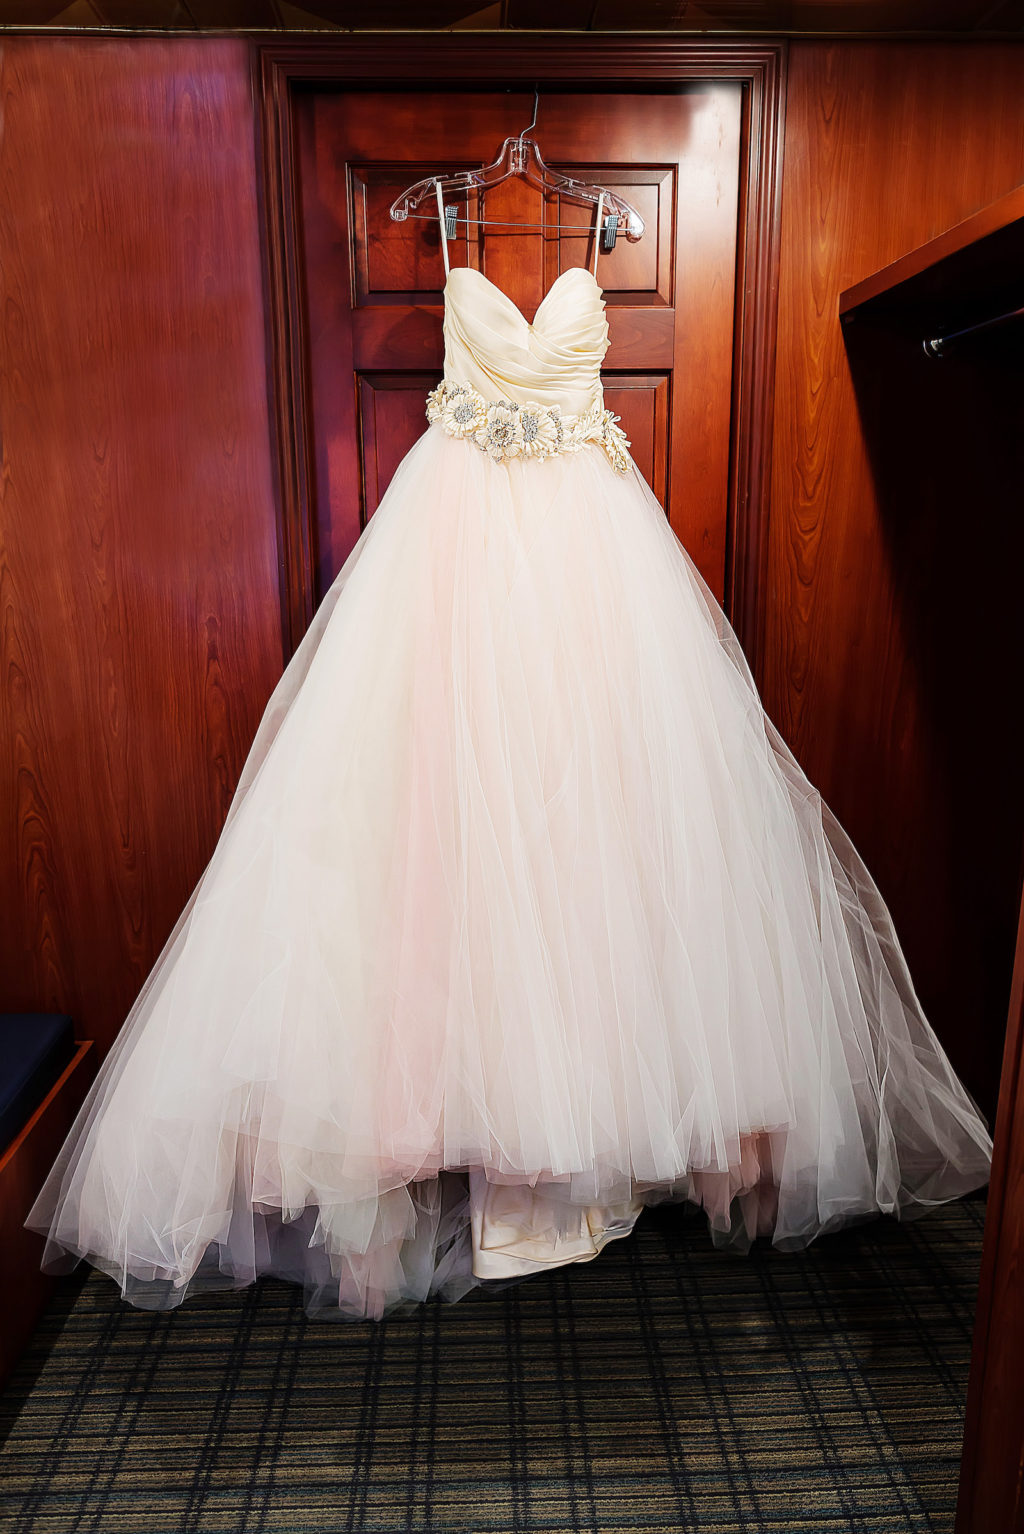 Princess Ballgown Sweetheart Strapless Bodice, Floral Belt, Tulle Skirt with Blush Pink Lining   Tampa Bay Wedding Photographer Limelight Photography